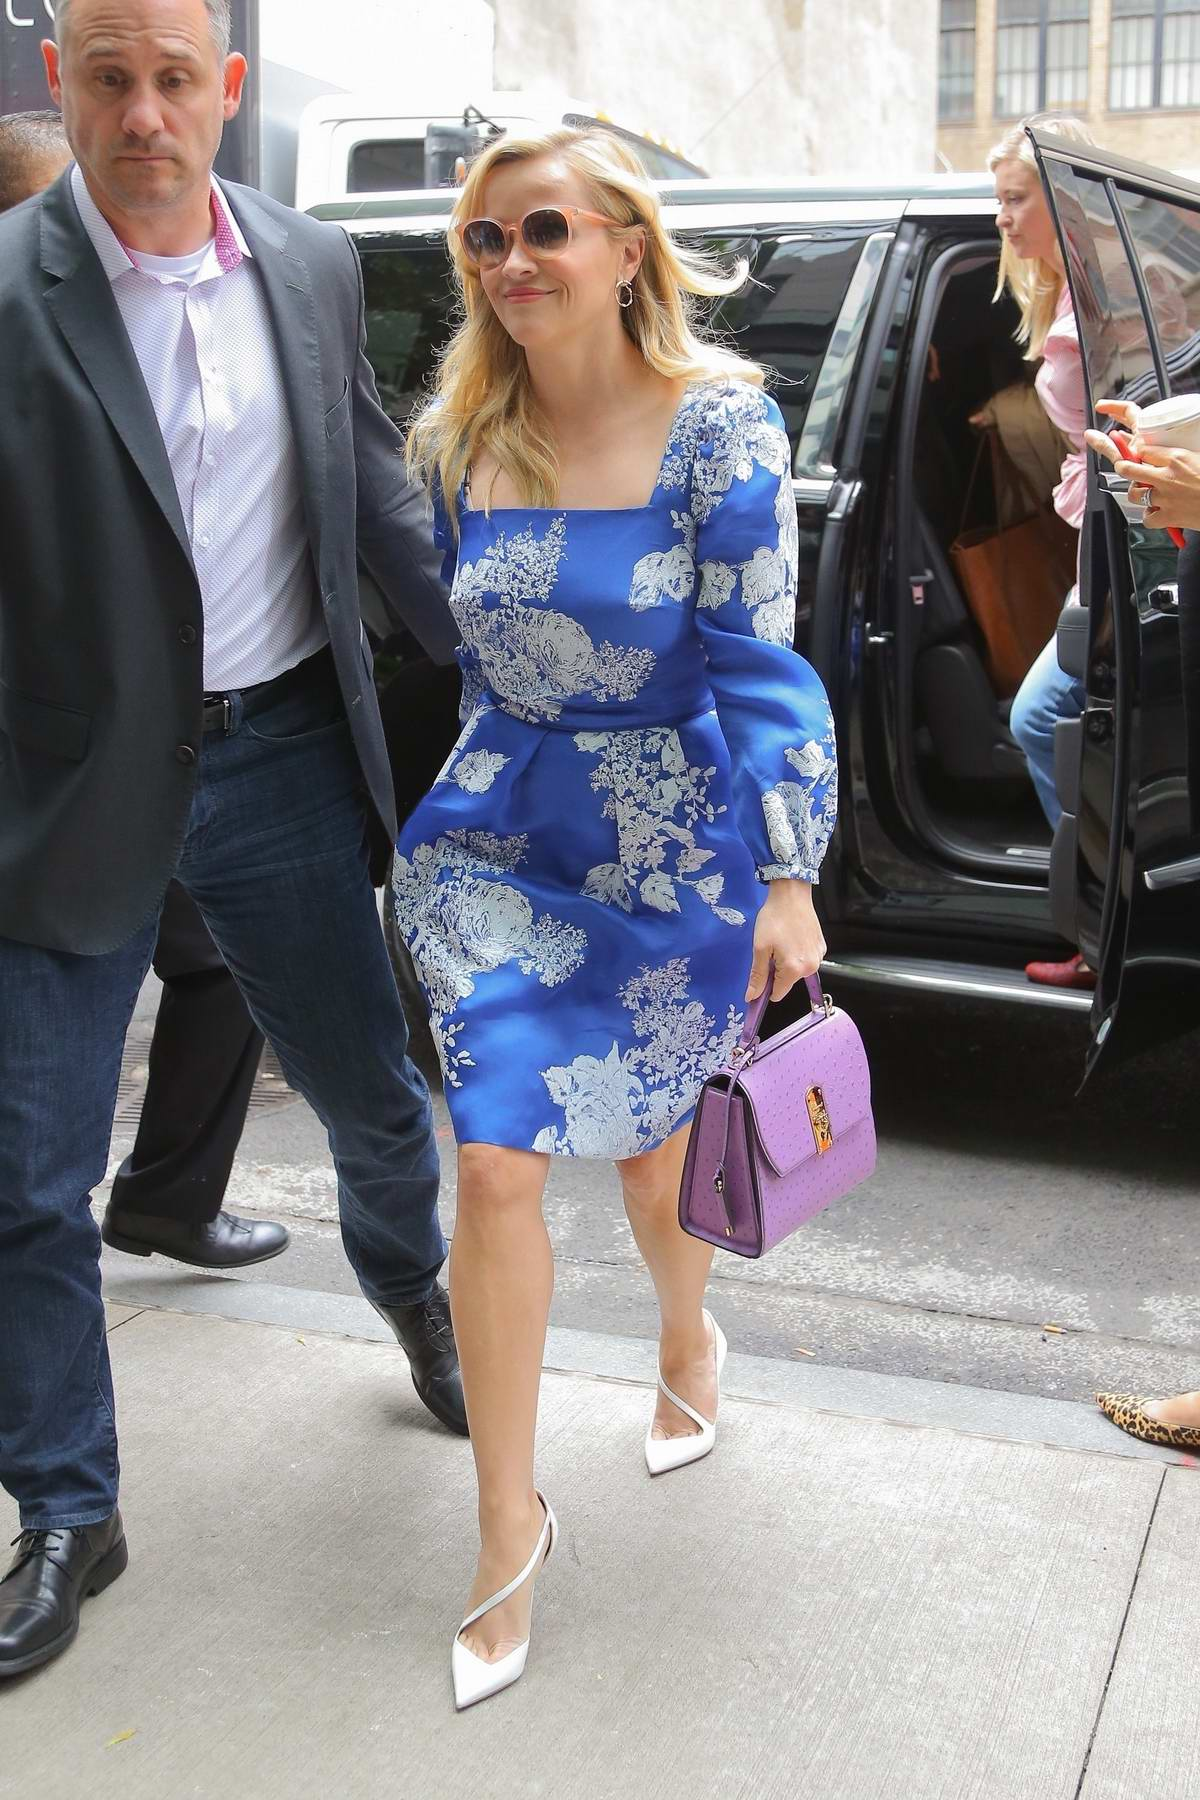 Reese Witherspoon steps out in a blue floral dress while promoting 'Big Little Lies' in New York City